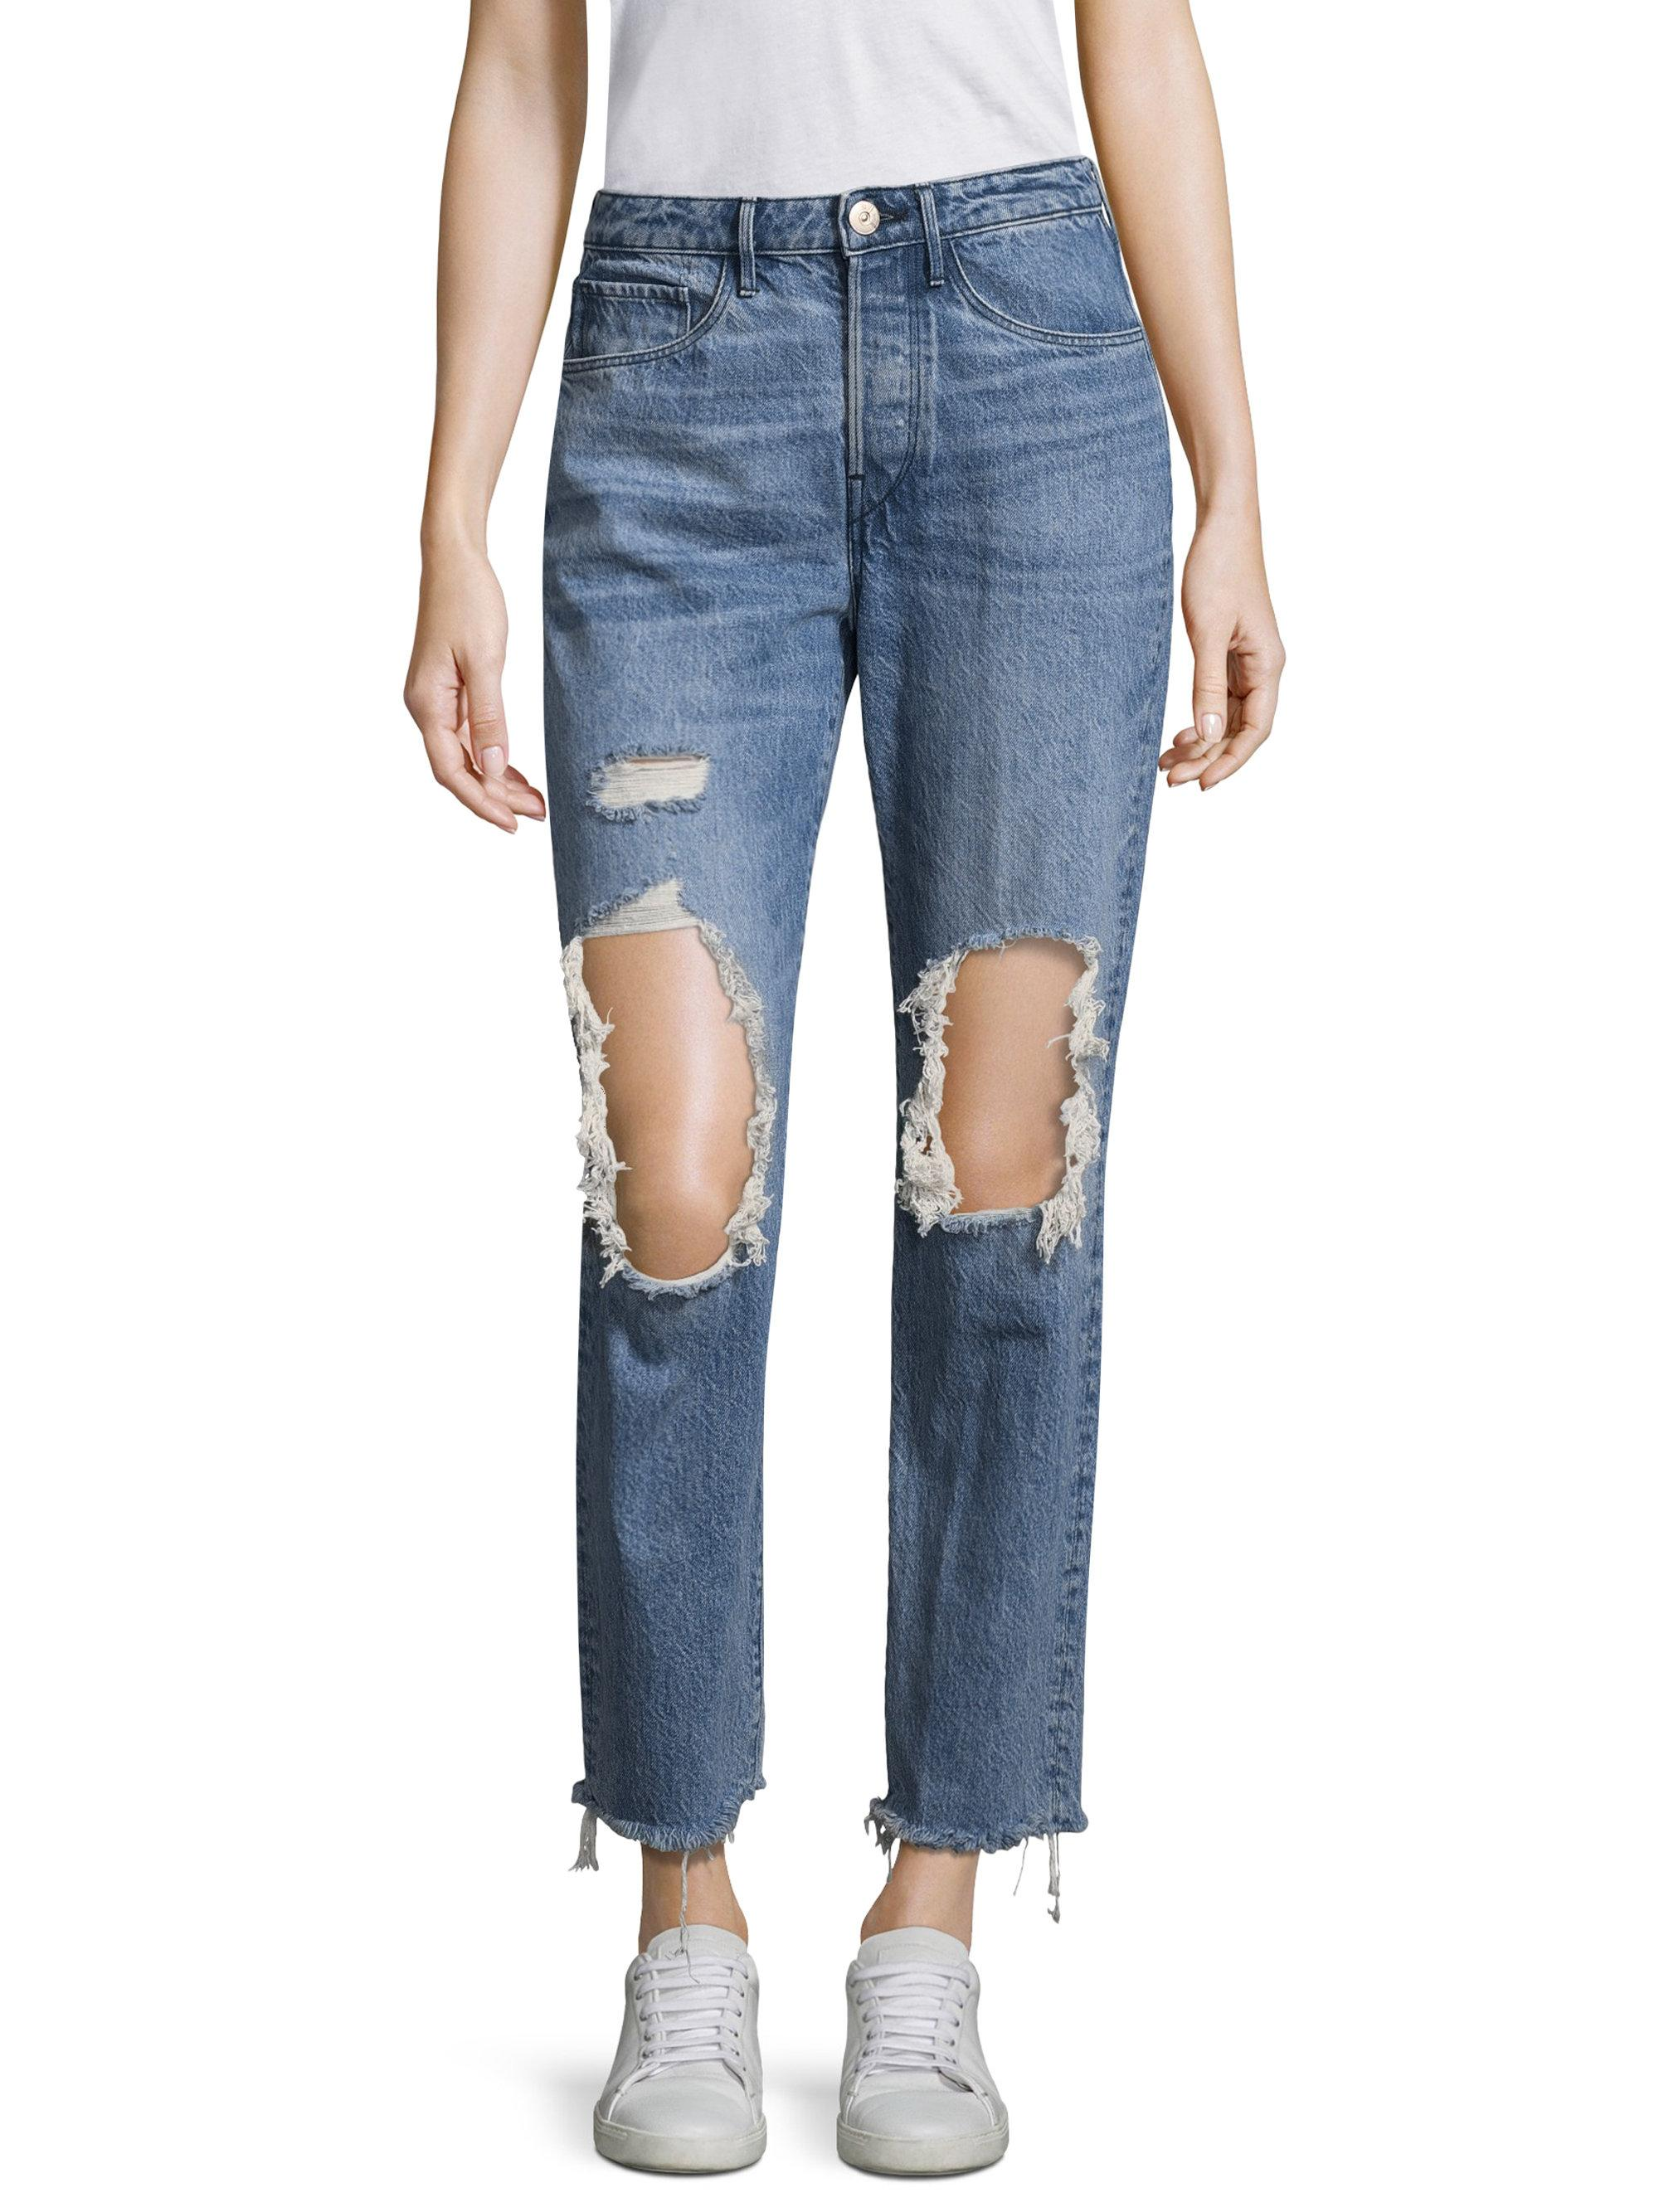 Woman Higher Ground Shatter Distressed Boyfriend Jeans Light Denim Size 30 3x1 Sale Cheap Prices Sale Clearance Store Outlet Cheap Price Cheap Purchase kzCGJb60KI